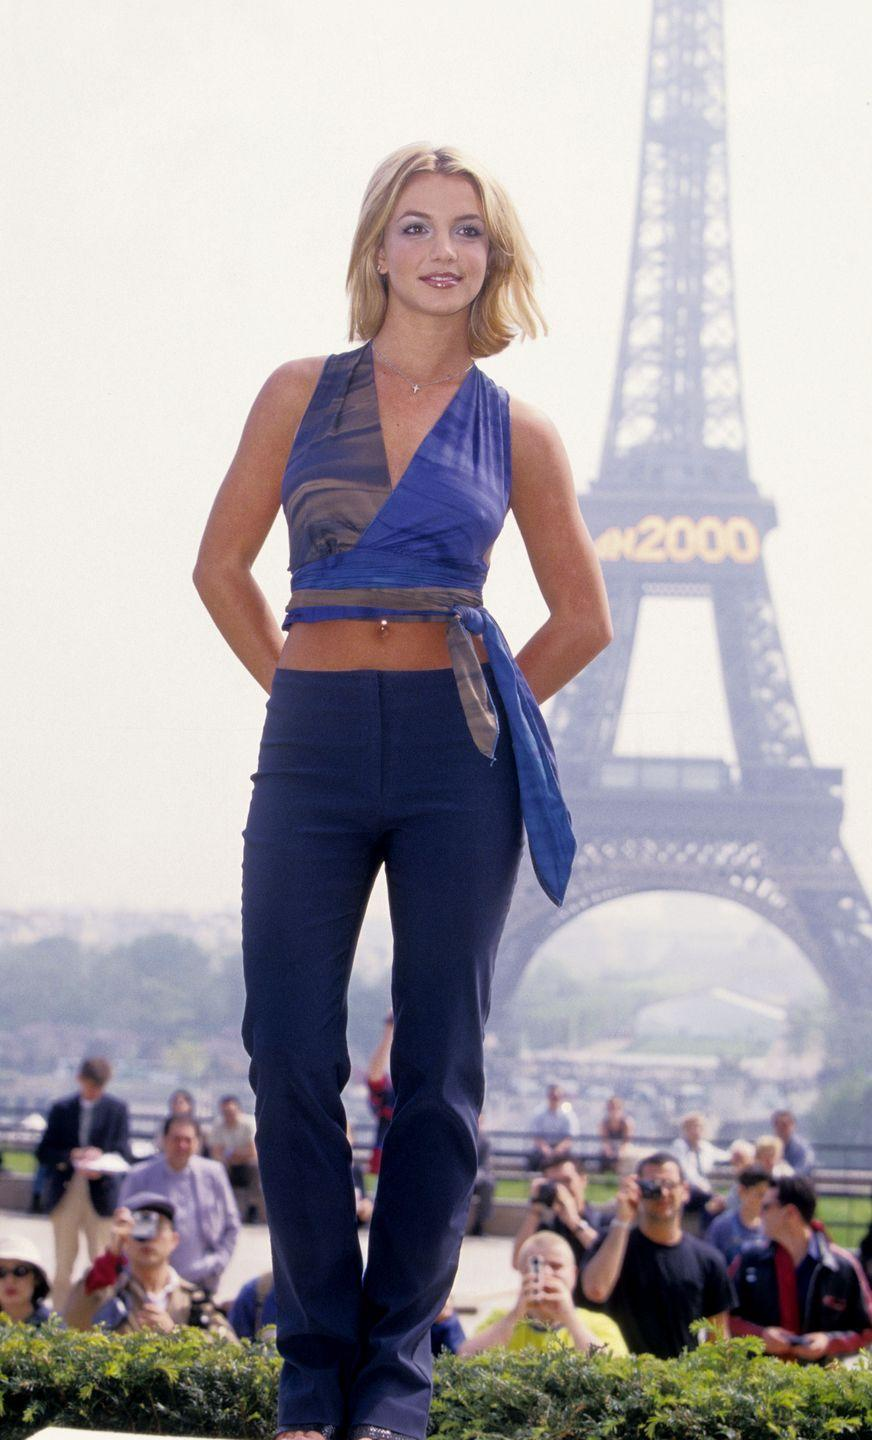 <p>Britney Spears launches her second album, <em>Oops!... I Did It Again</em> at the Eiffel Tower in Paris, France. </p>